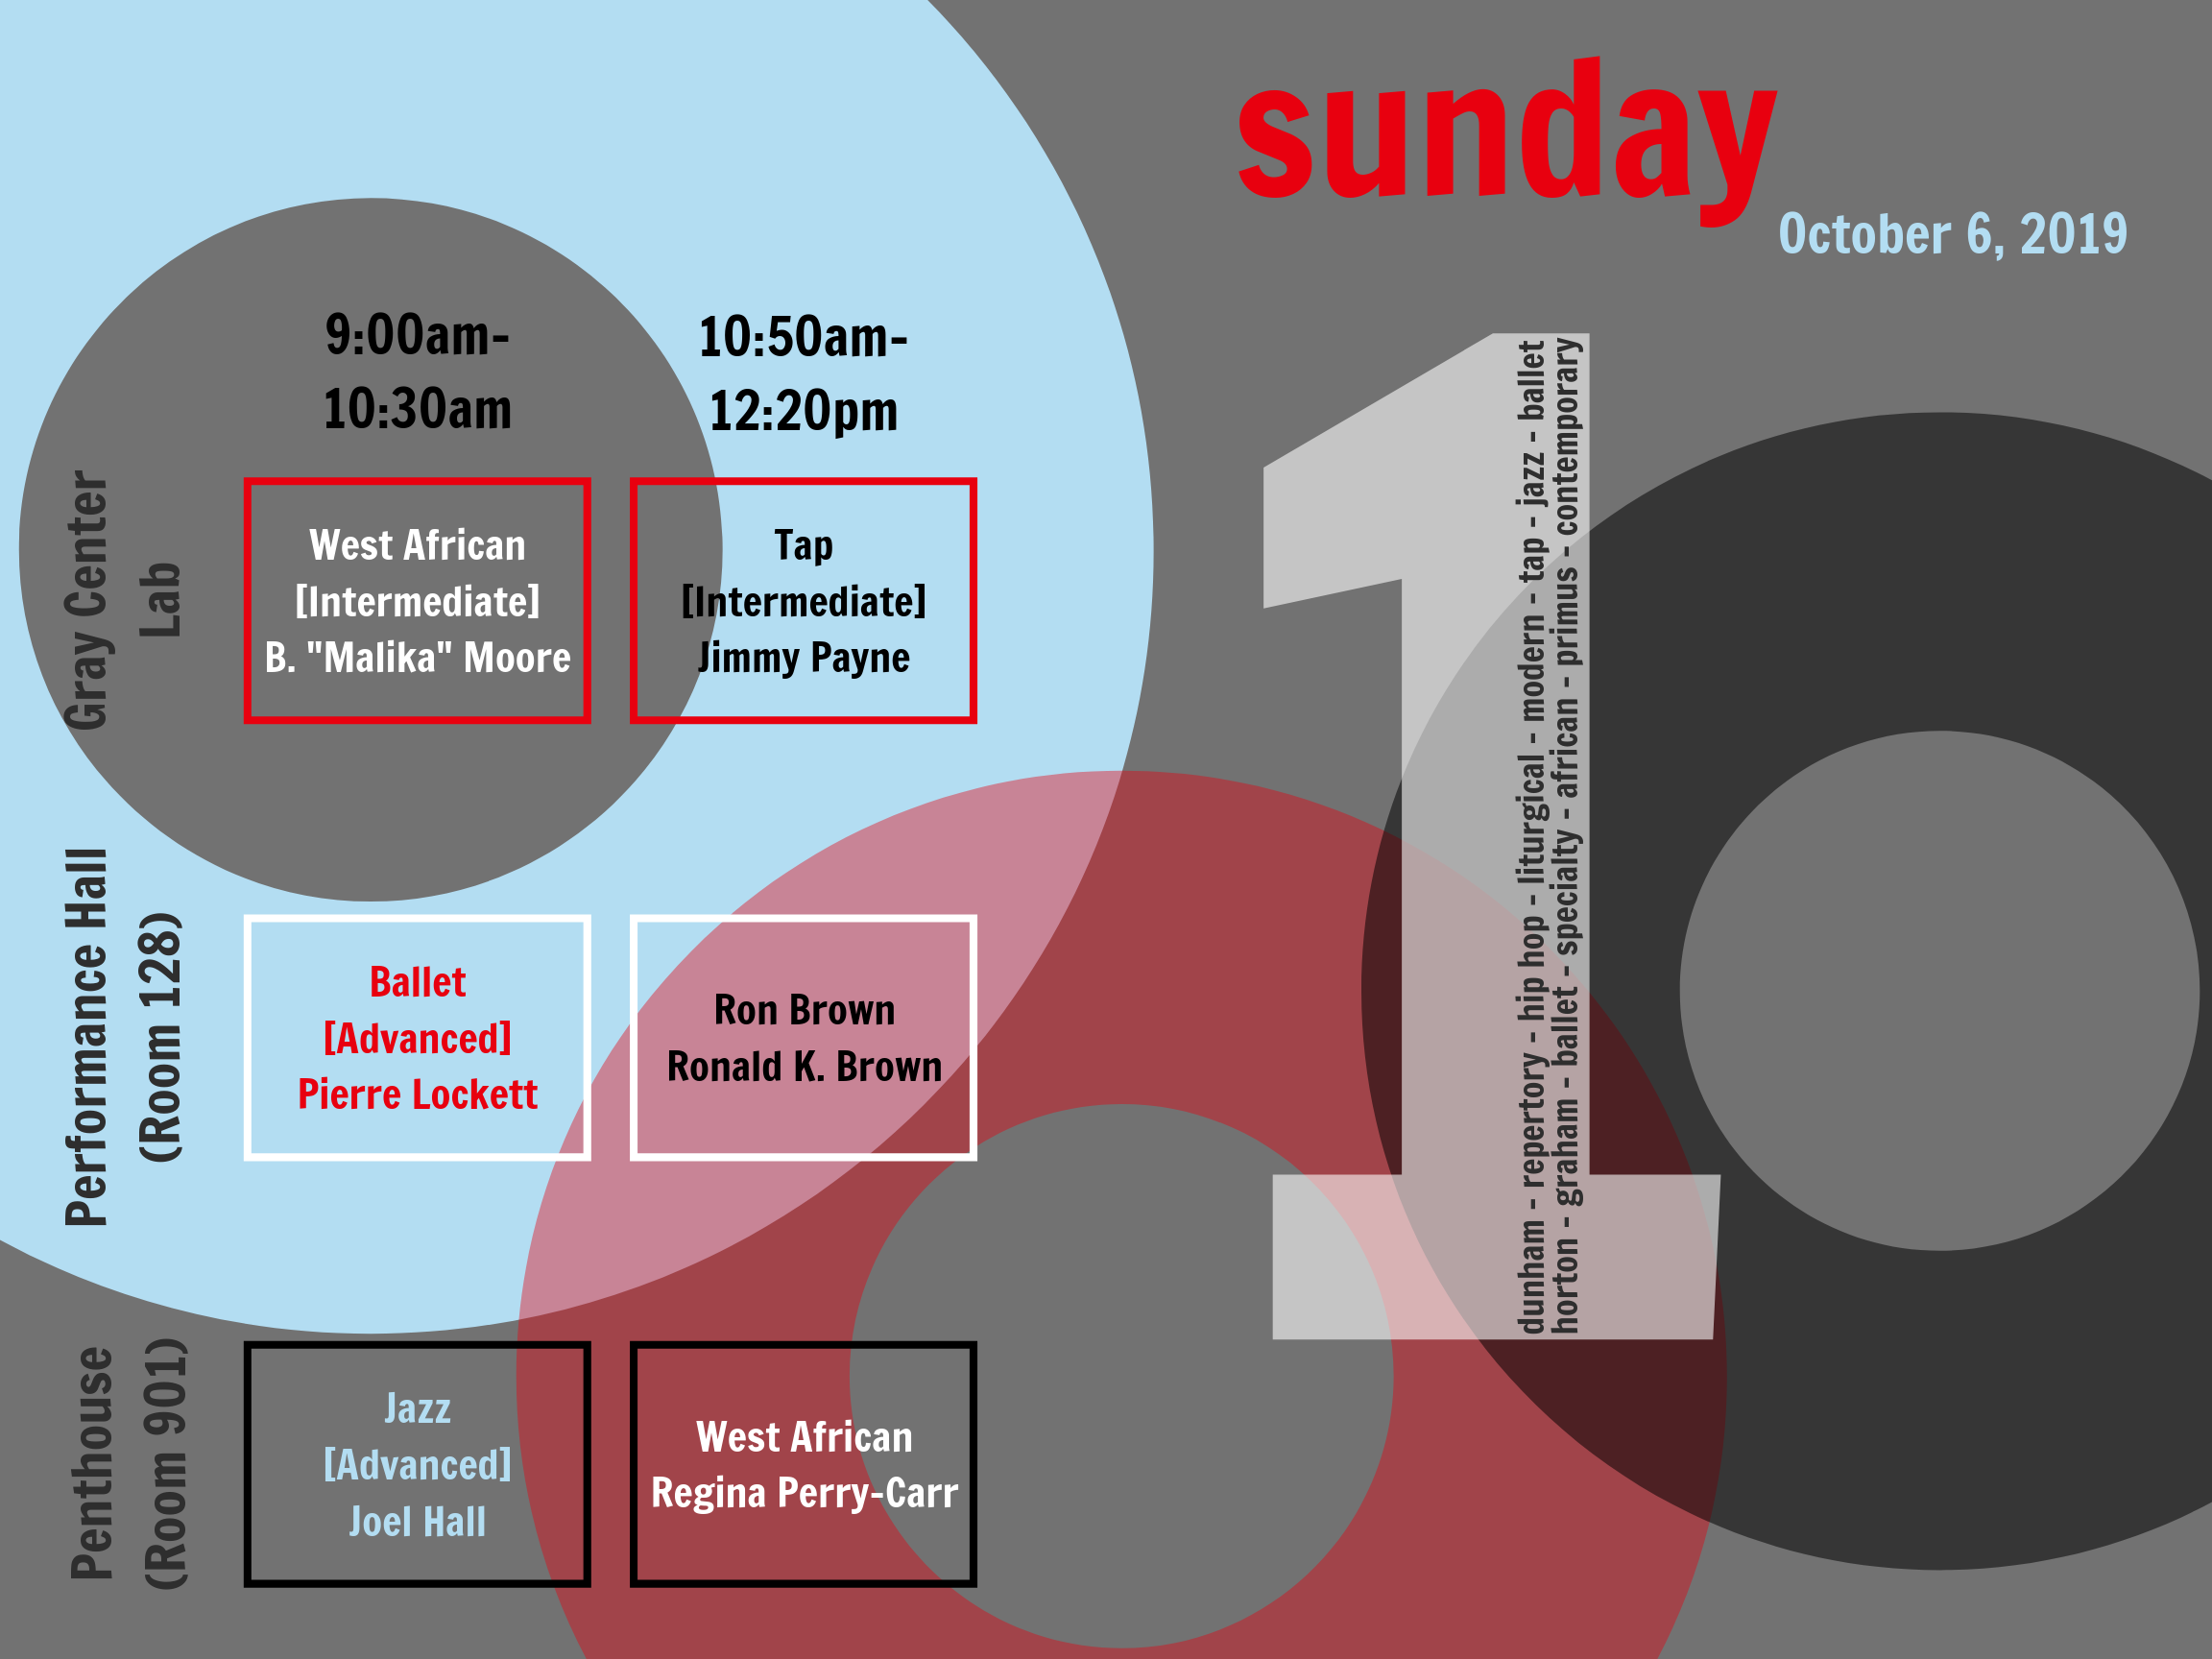 on the 1 - Sunday schedule